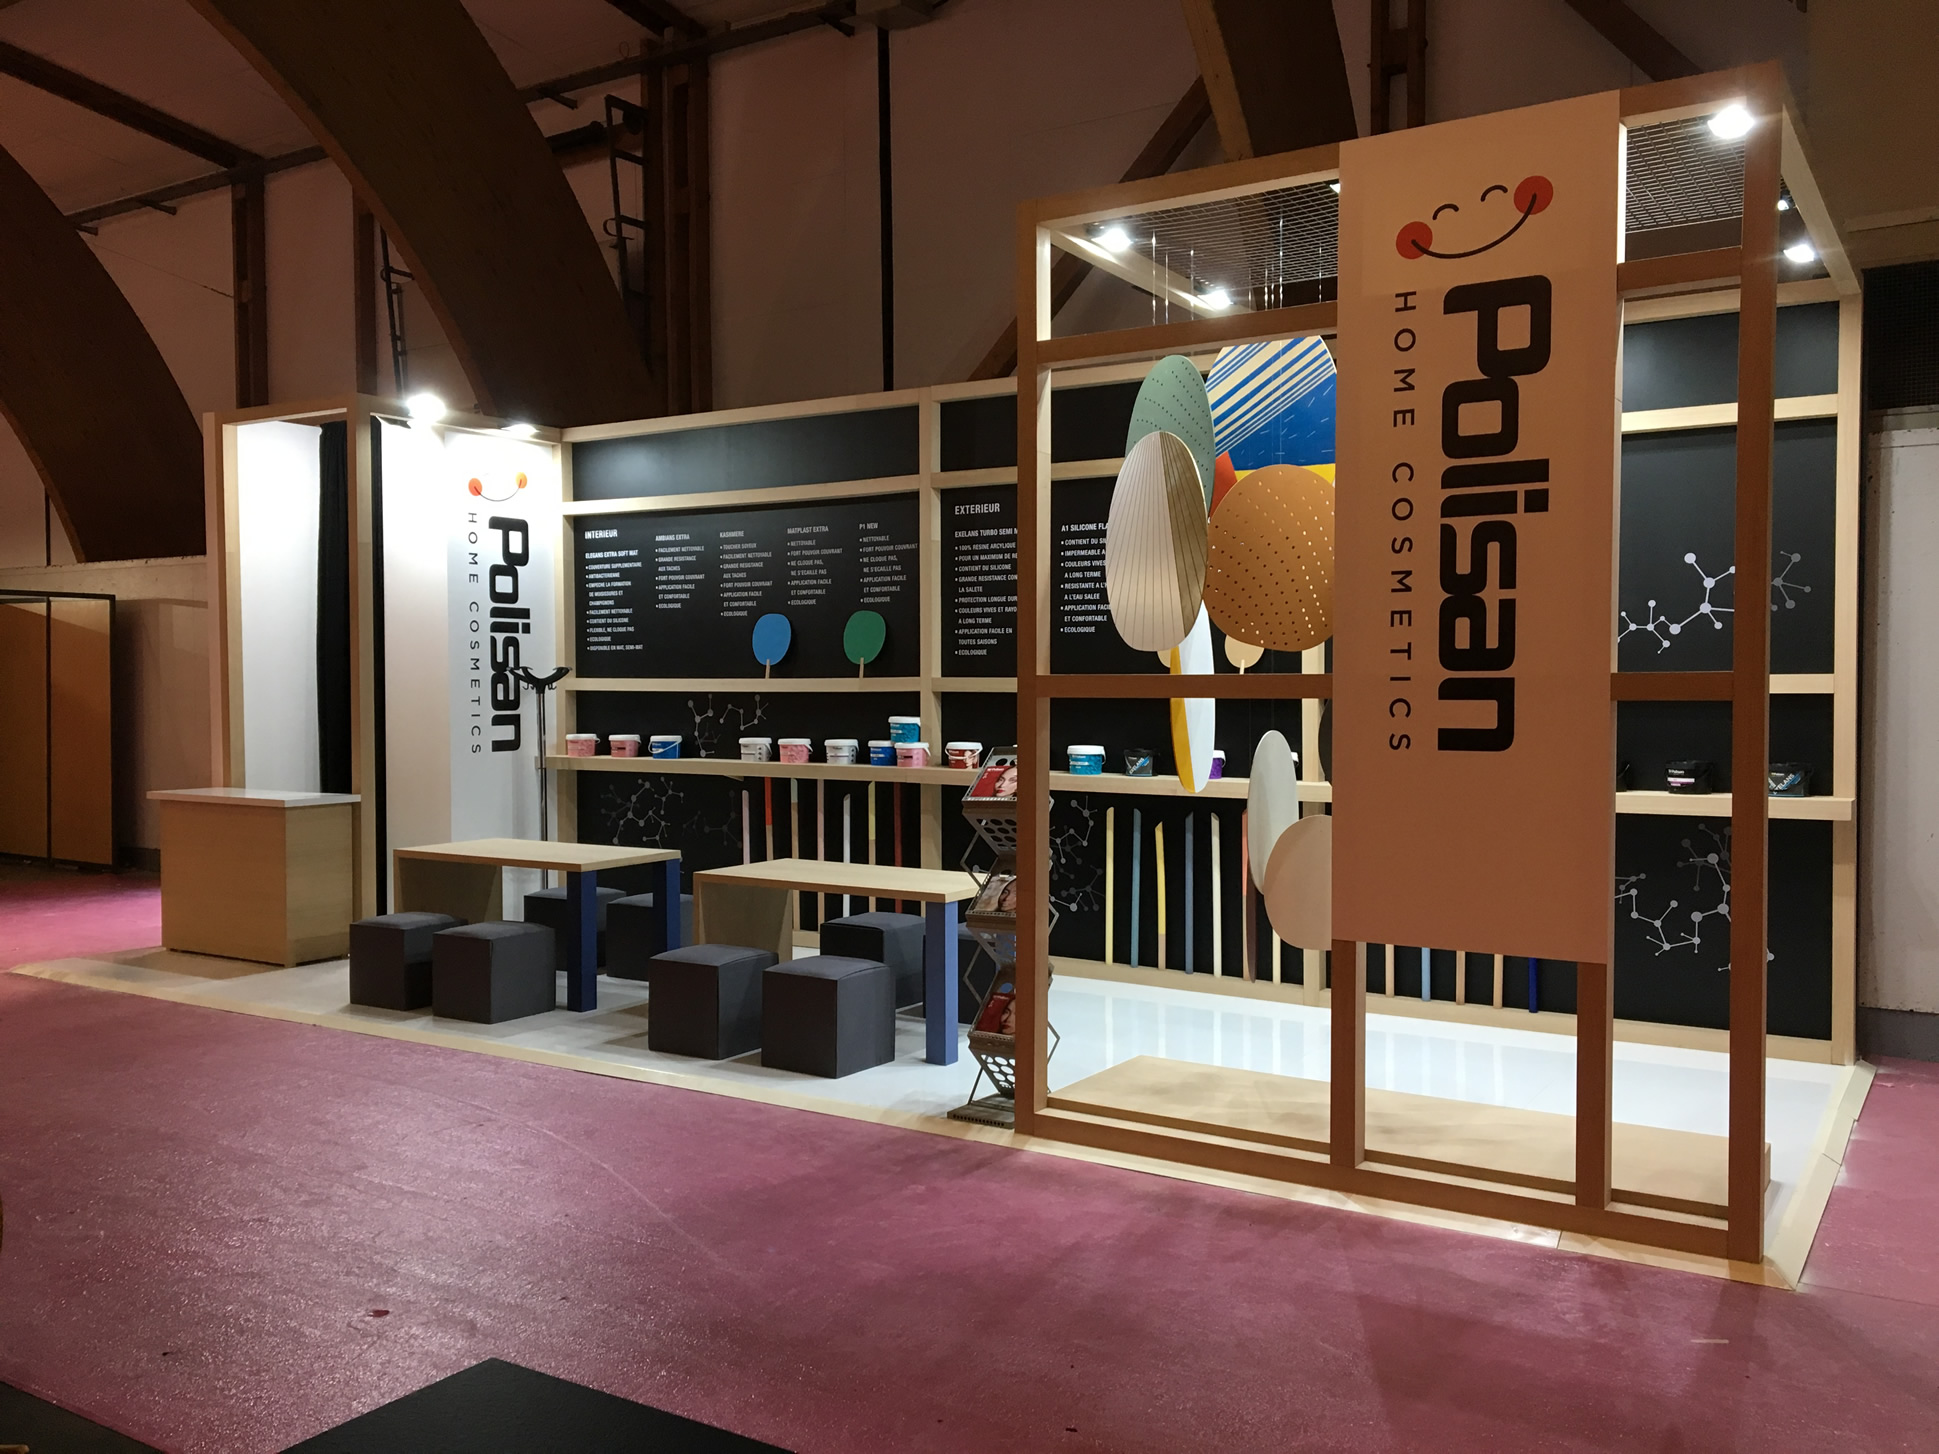 <a href='application-detail/152'>CLICK HERE - ARTIBAT 2018 RENNES FRANCE POLISAN STAND   SHOW MORE<a/>